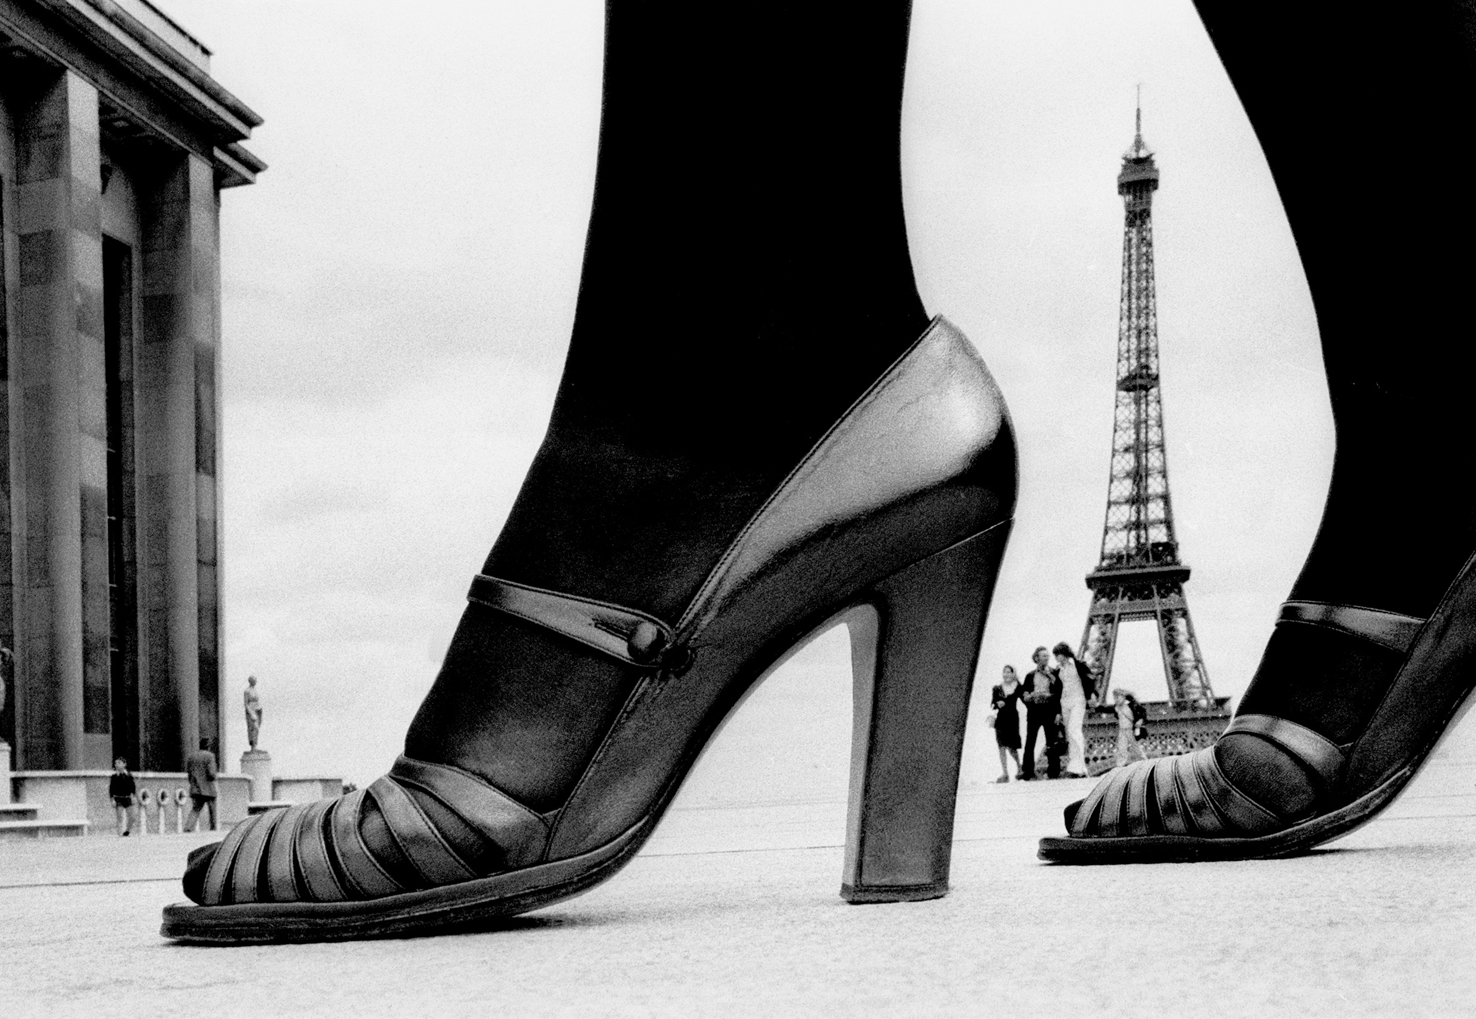 Frank Horvat - Shoe and Eiffel Tower D - Paris, 1974 - courtesy Photographica Fine Art Gallery, Lugano